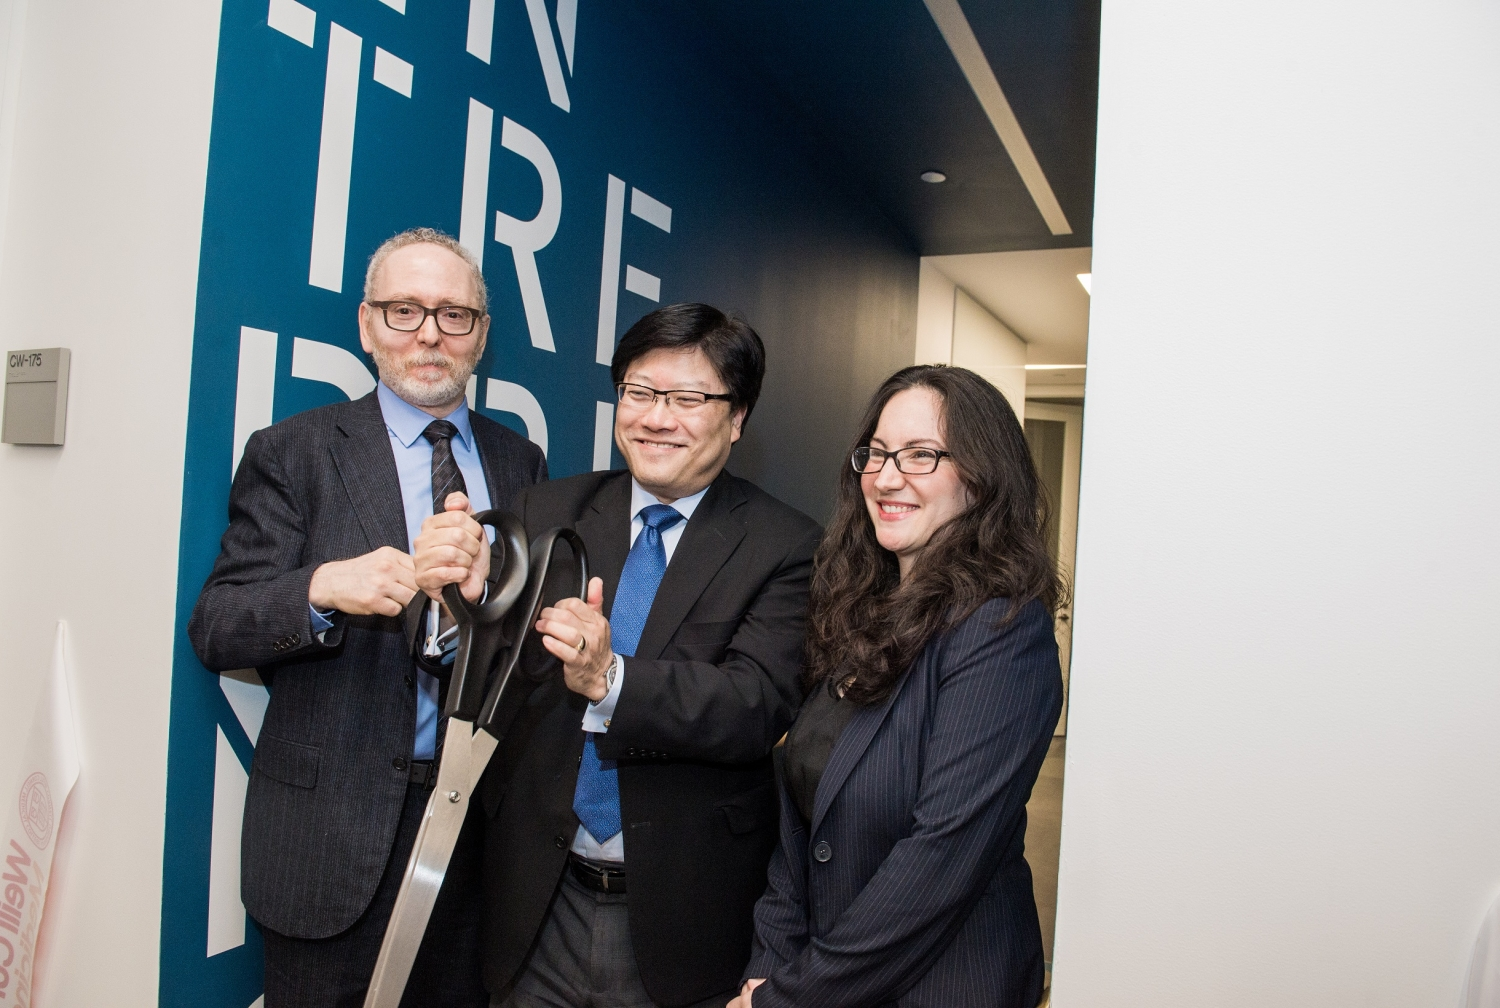 Larry Schlossman, Dean Augustine M.K. Choi and Dr. Sarah Kishinevsky. Photo credit: Studio Brooke.